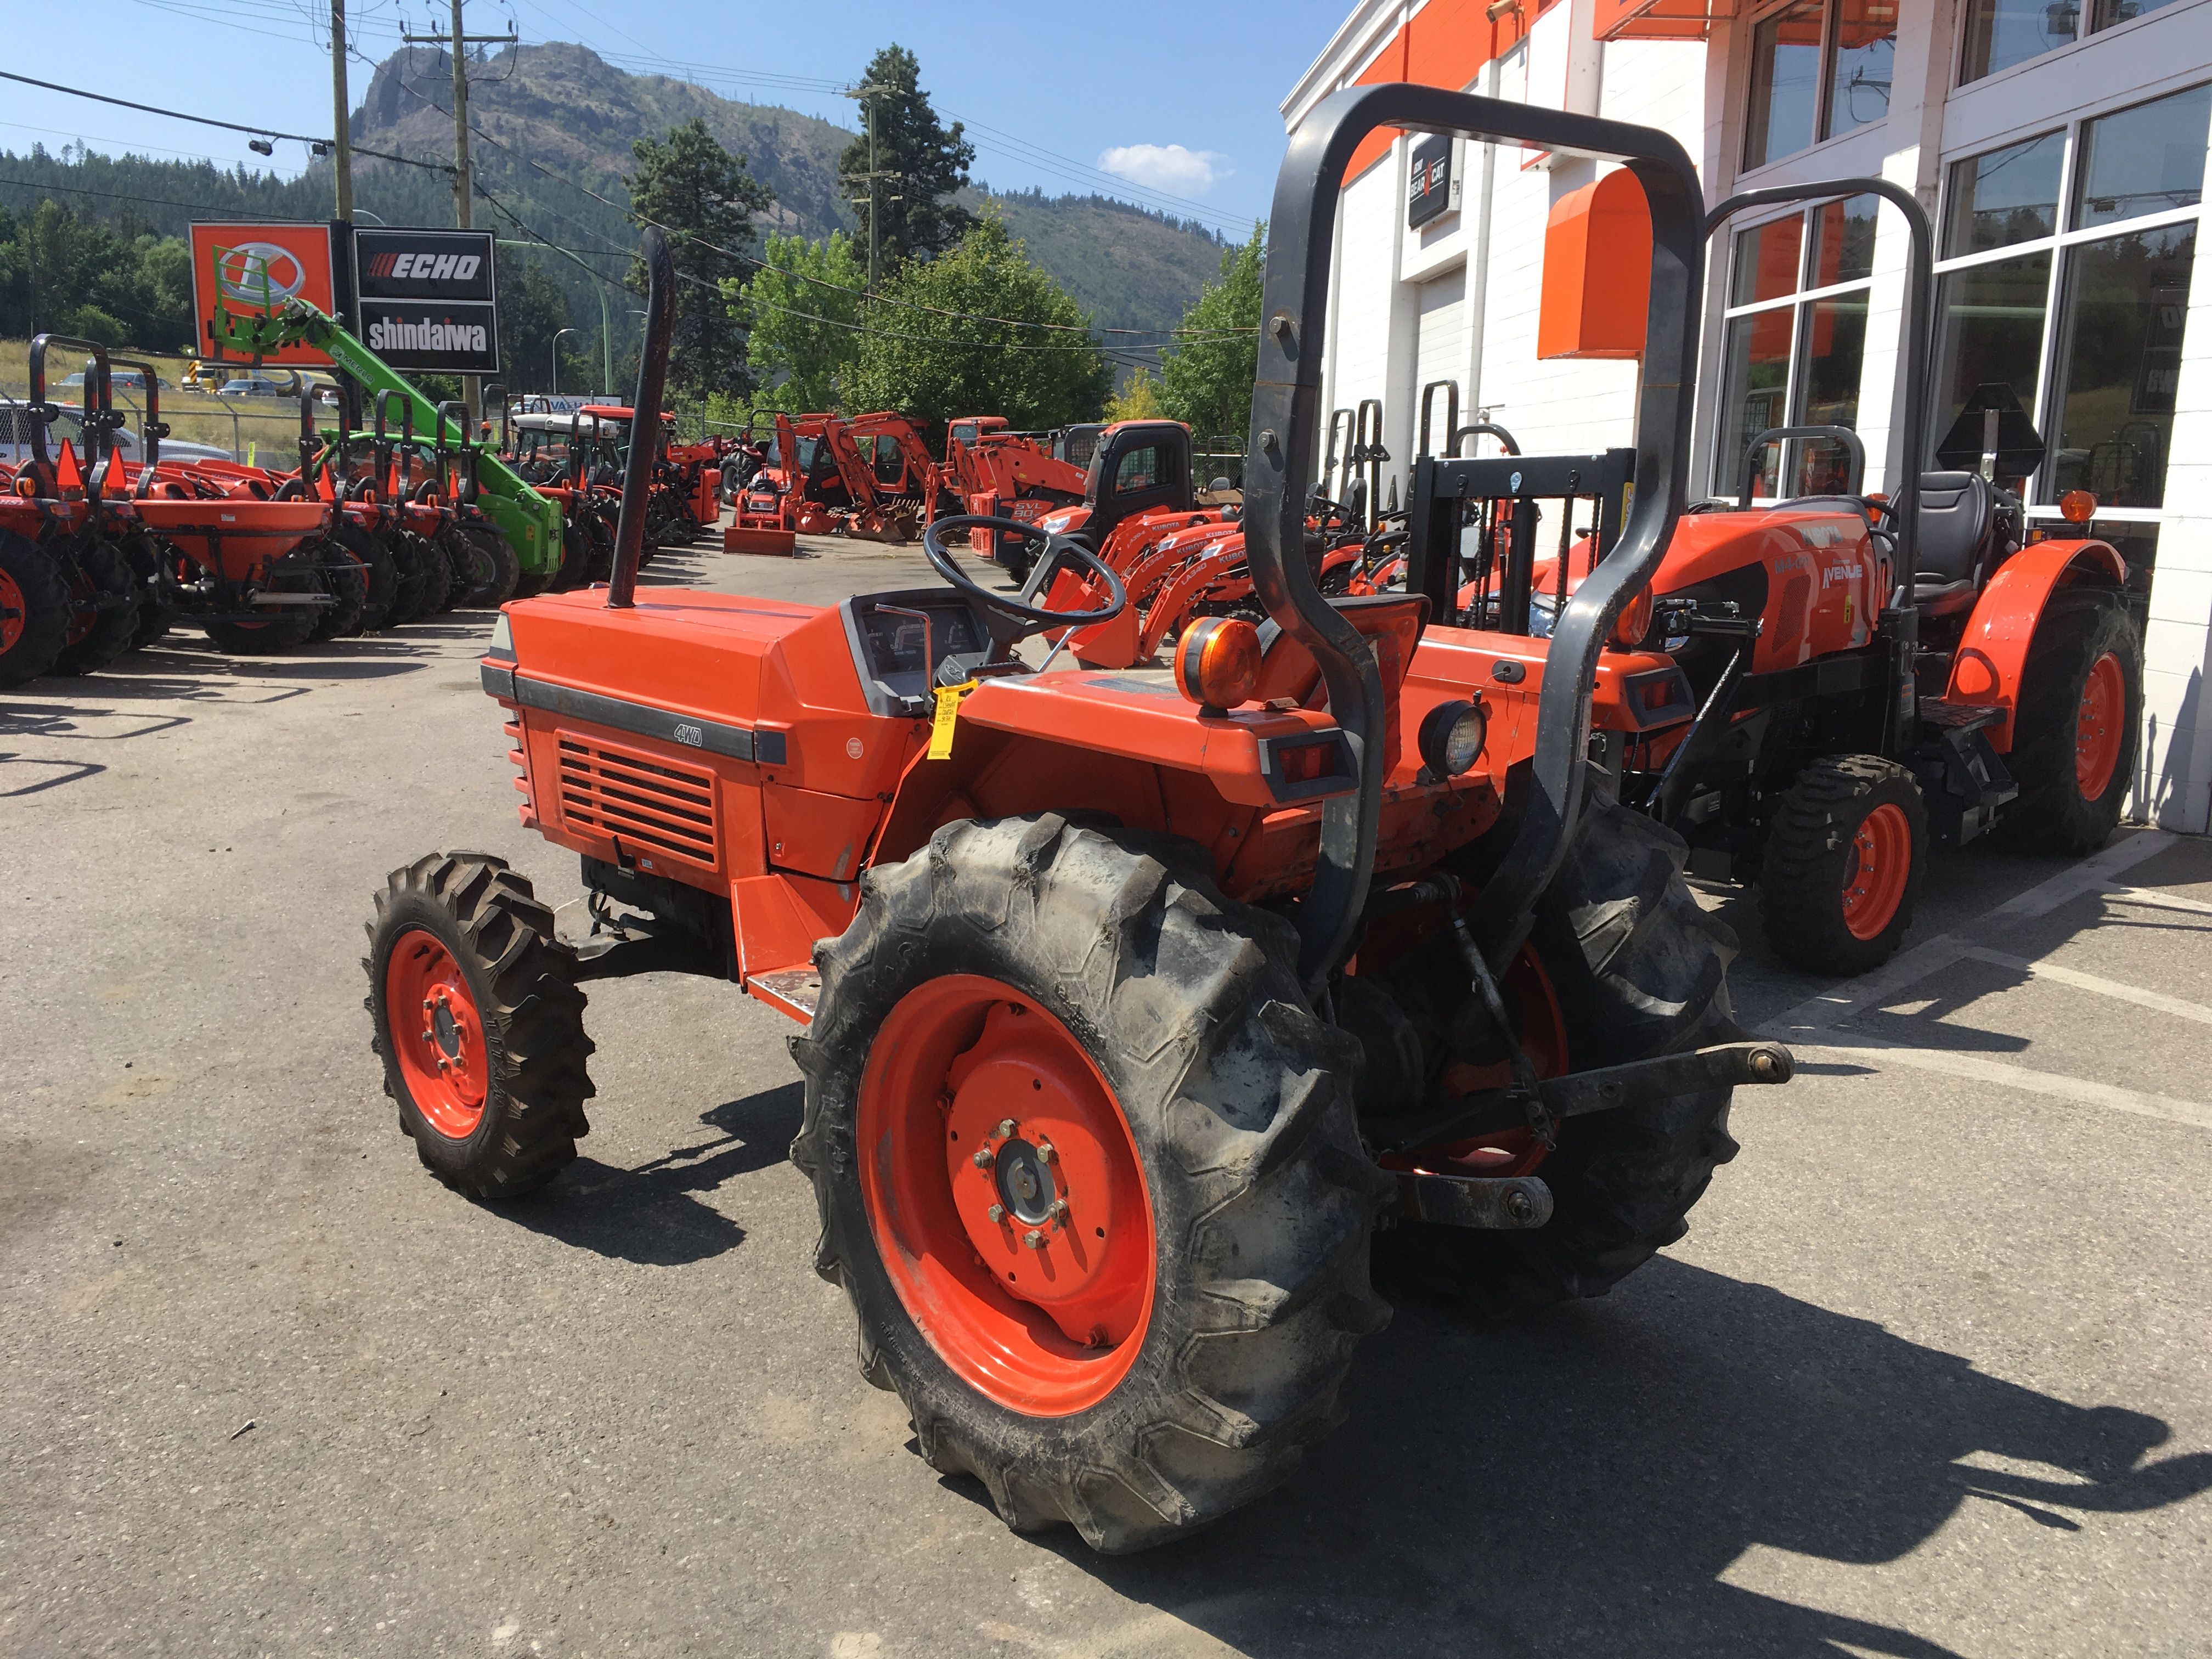 1992 Kubota L3450 Tractor for sale in Abbotsford, BC | IronSearch